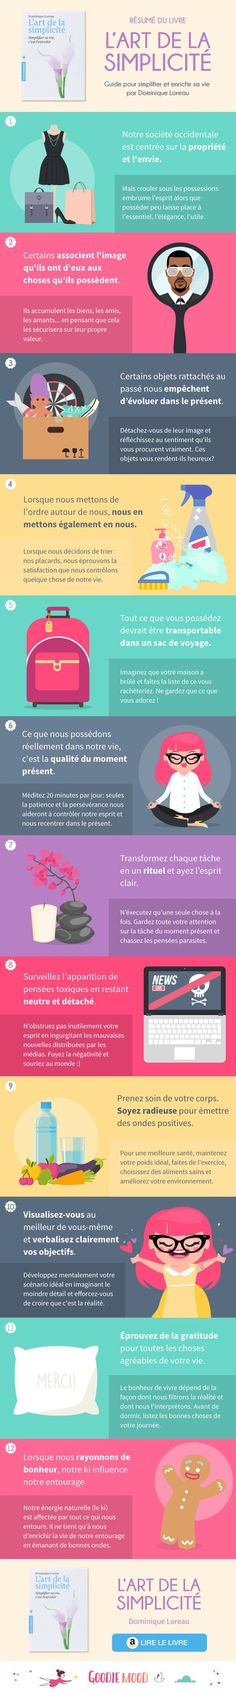 the art of simplicity of dominique Loreau – summary of the illustrated book go … Jane Eyre, Positive Mind, Positive Attitude, Good To Know, Feel Good, Miracle Morning, Daily Meditation, Anti Stress, Good Mood